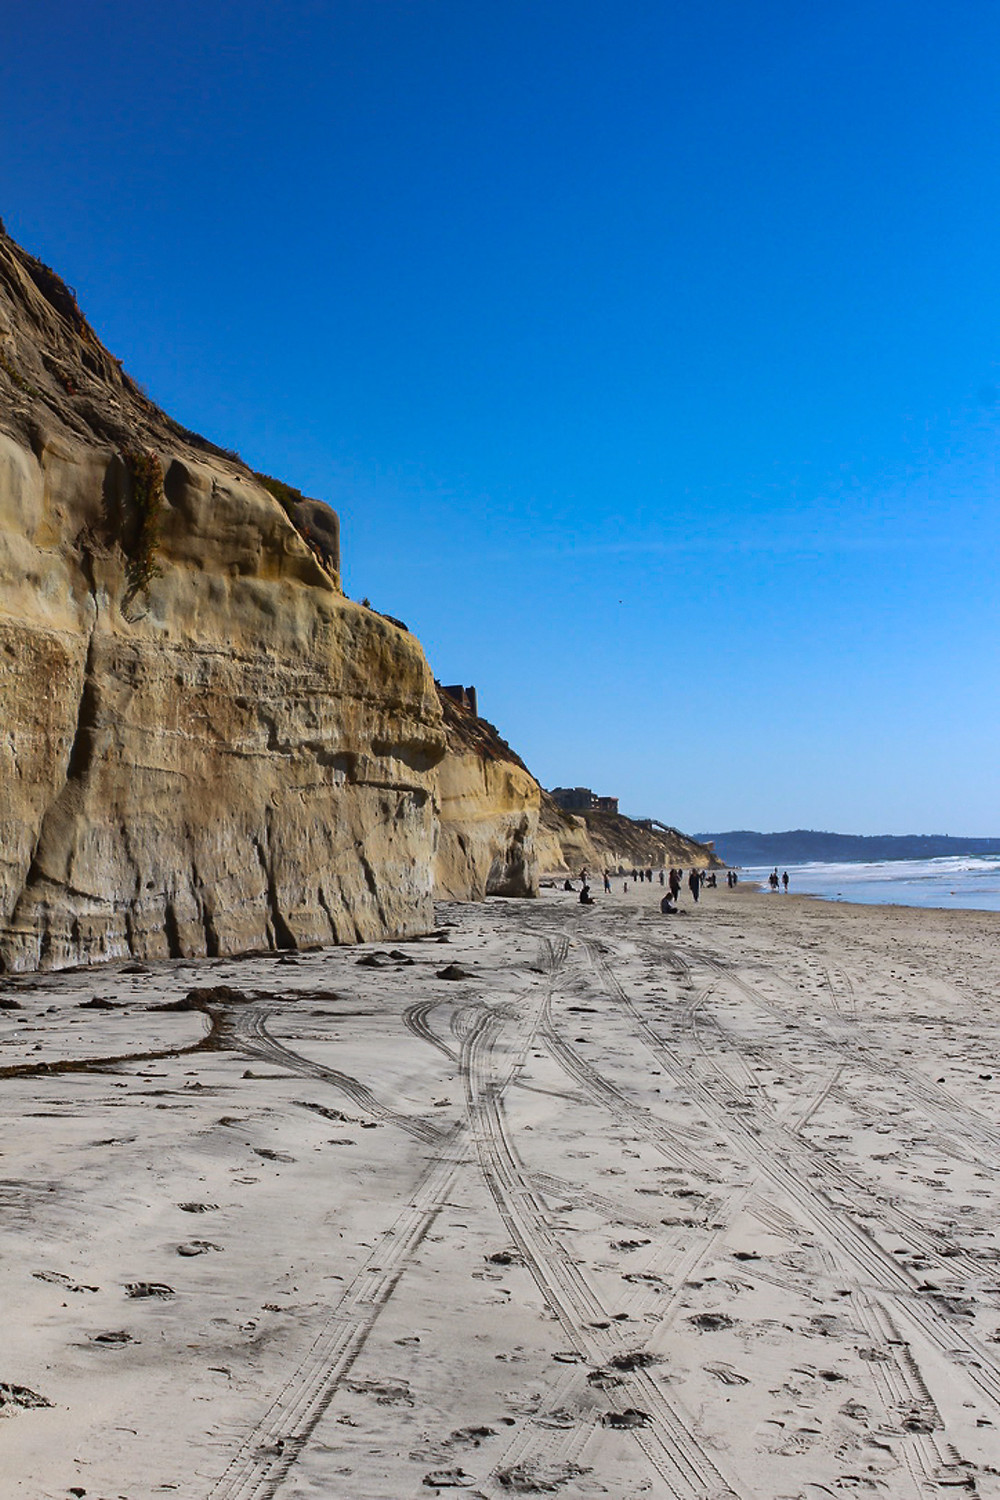 cliffside view of part of Torrey Pines State Beach, Torrey Pines State Natural Reserve, La Jolla, California